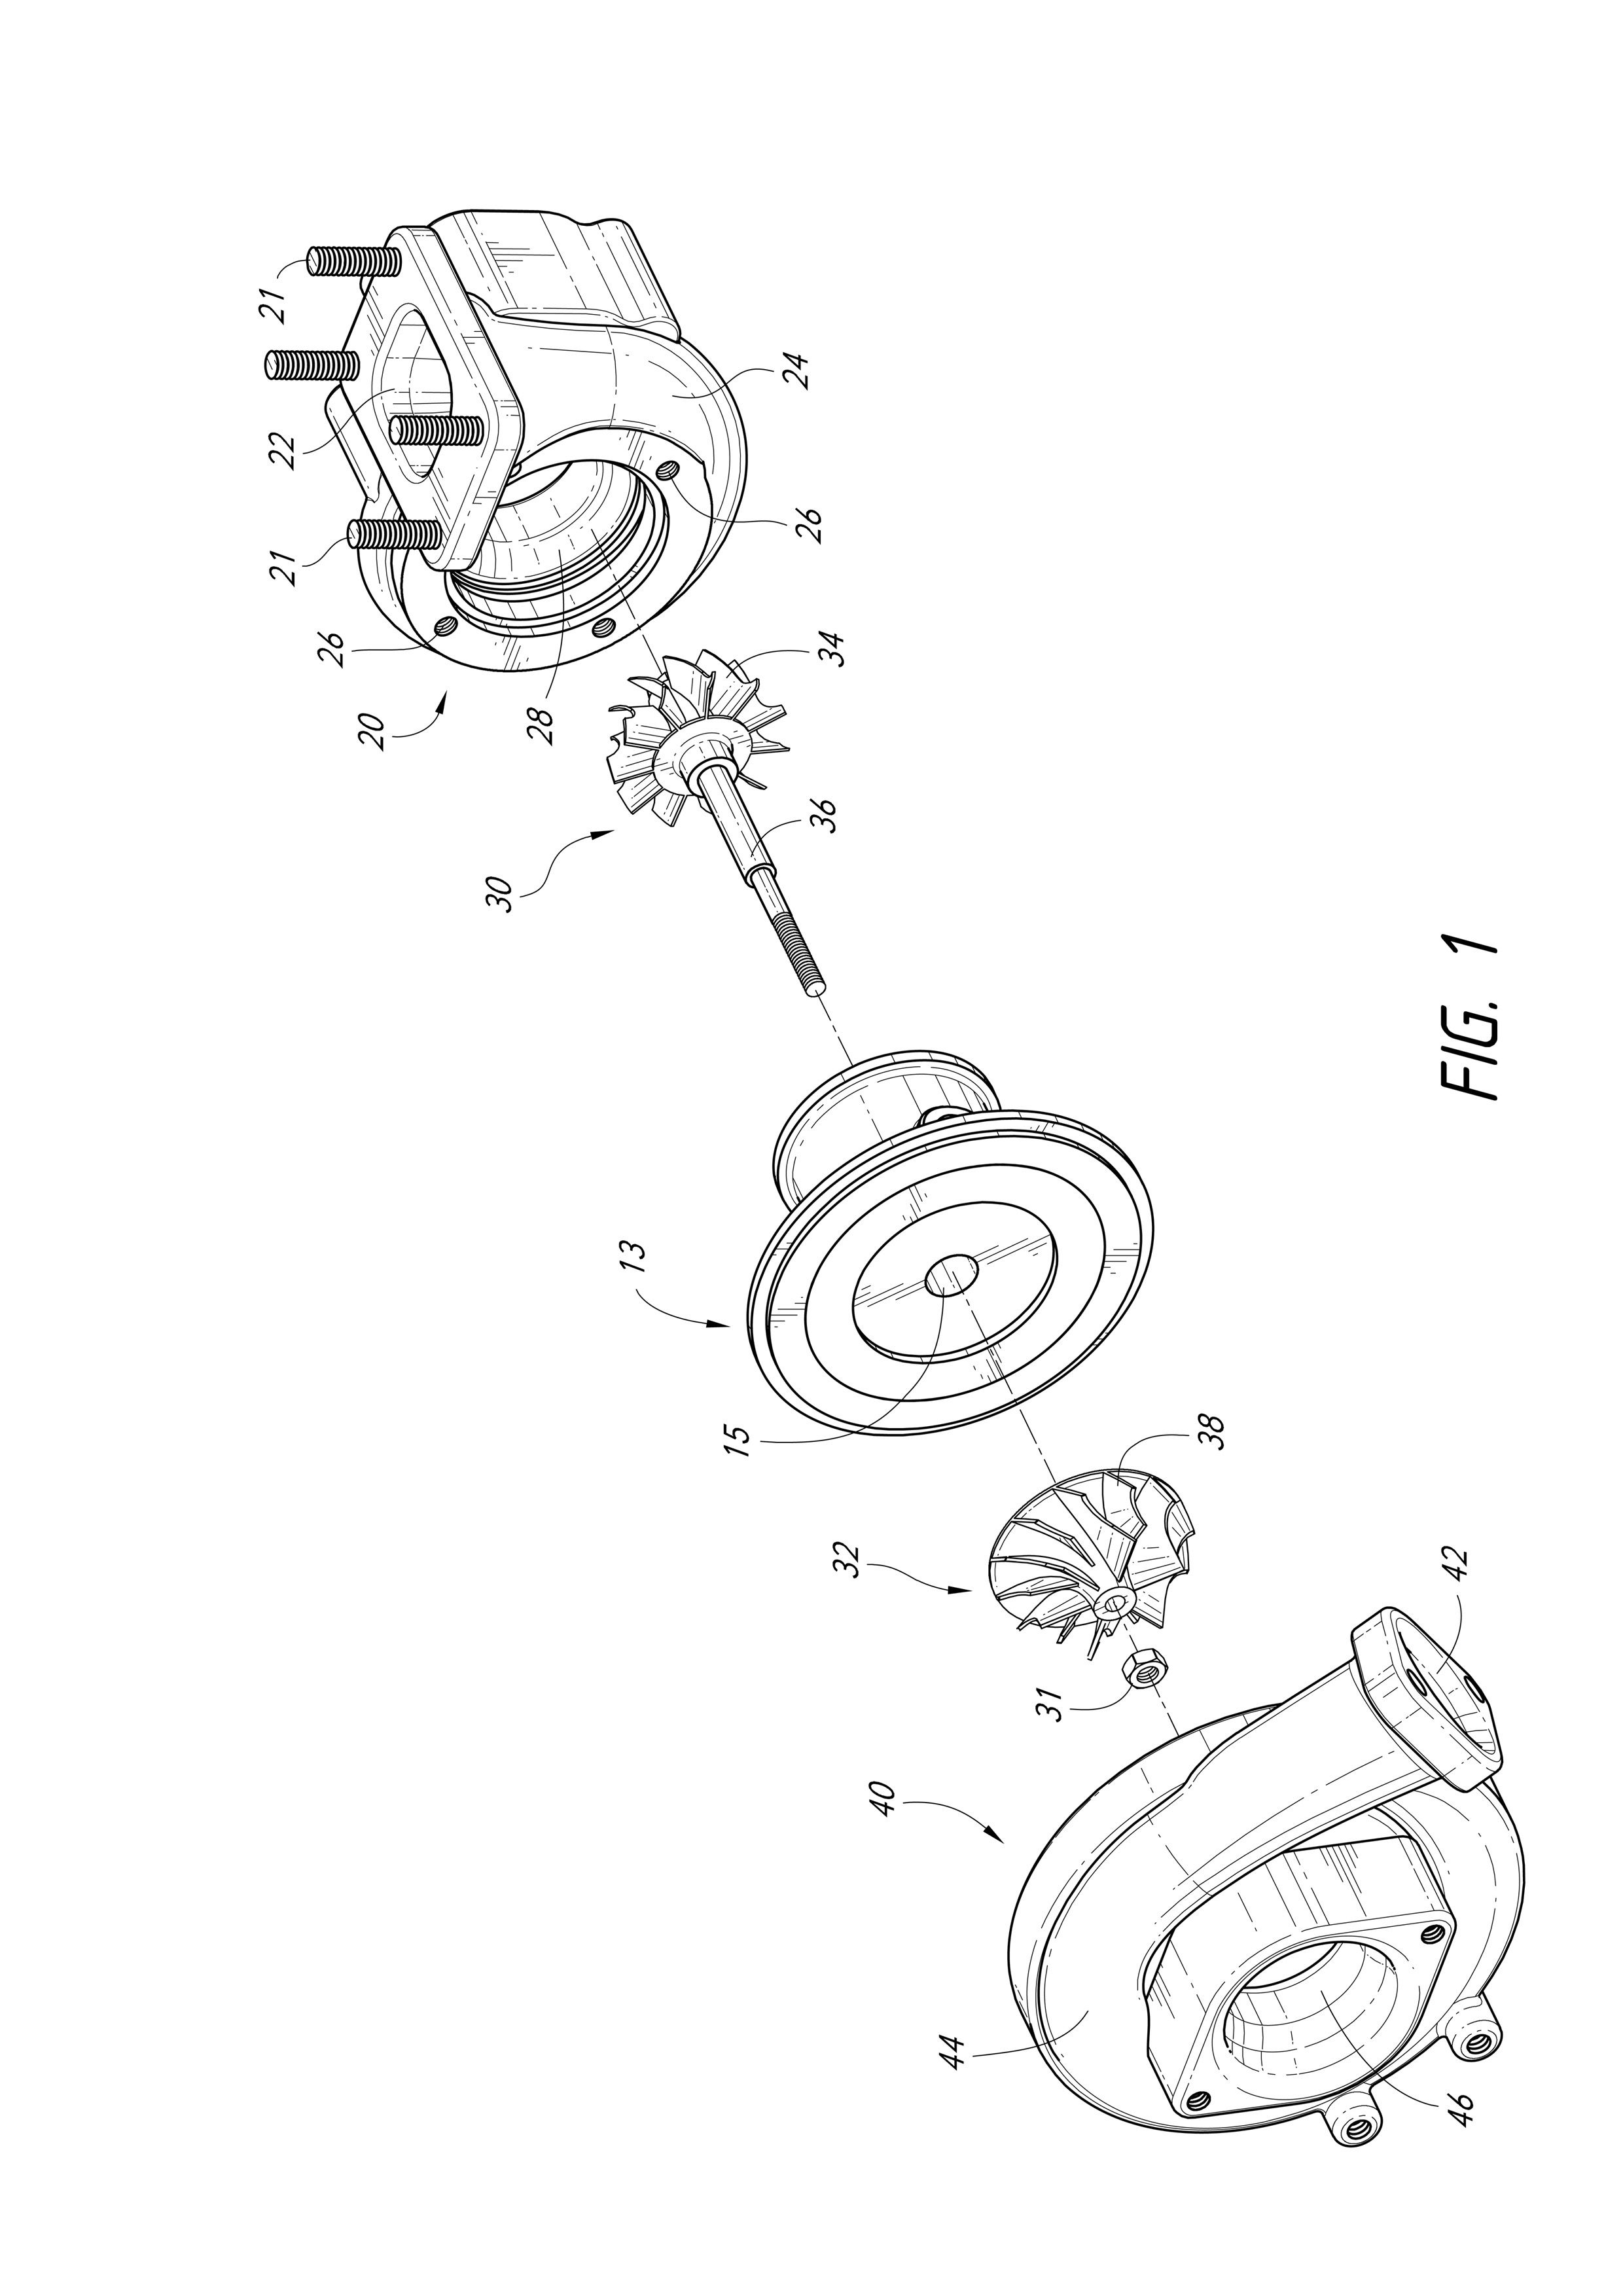 hight resolution of exploded view of a turbo charger